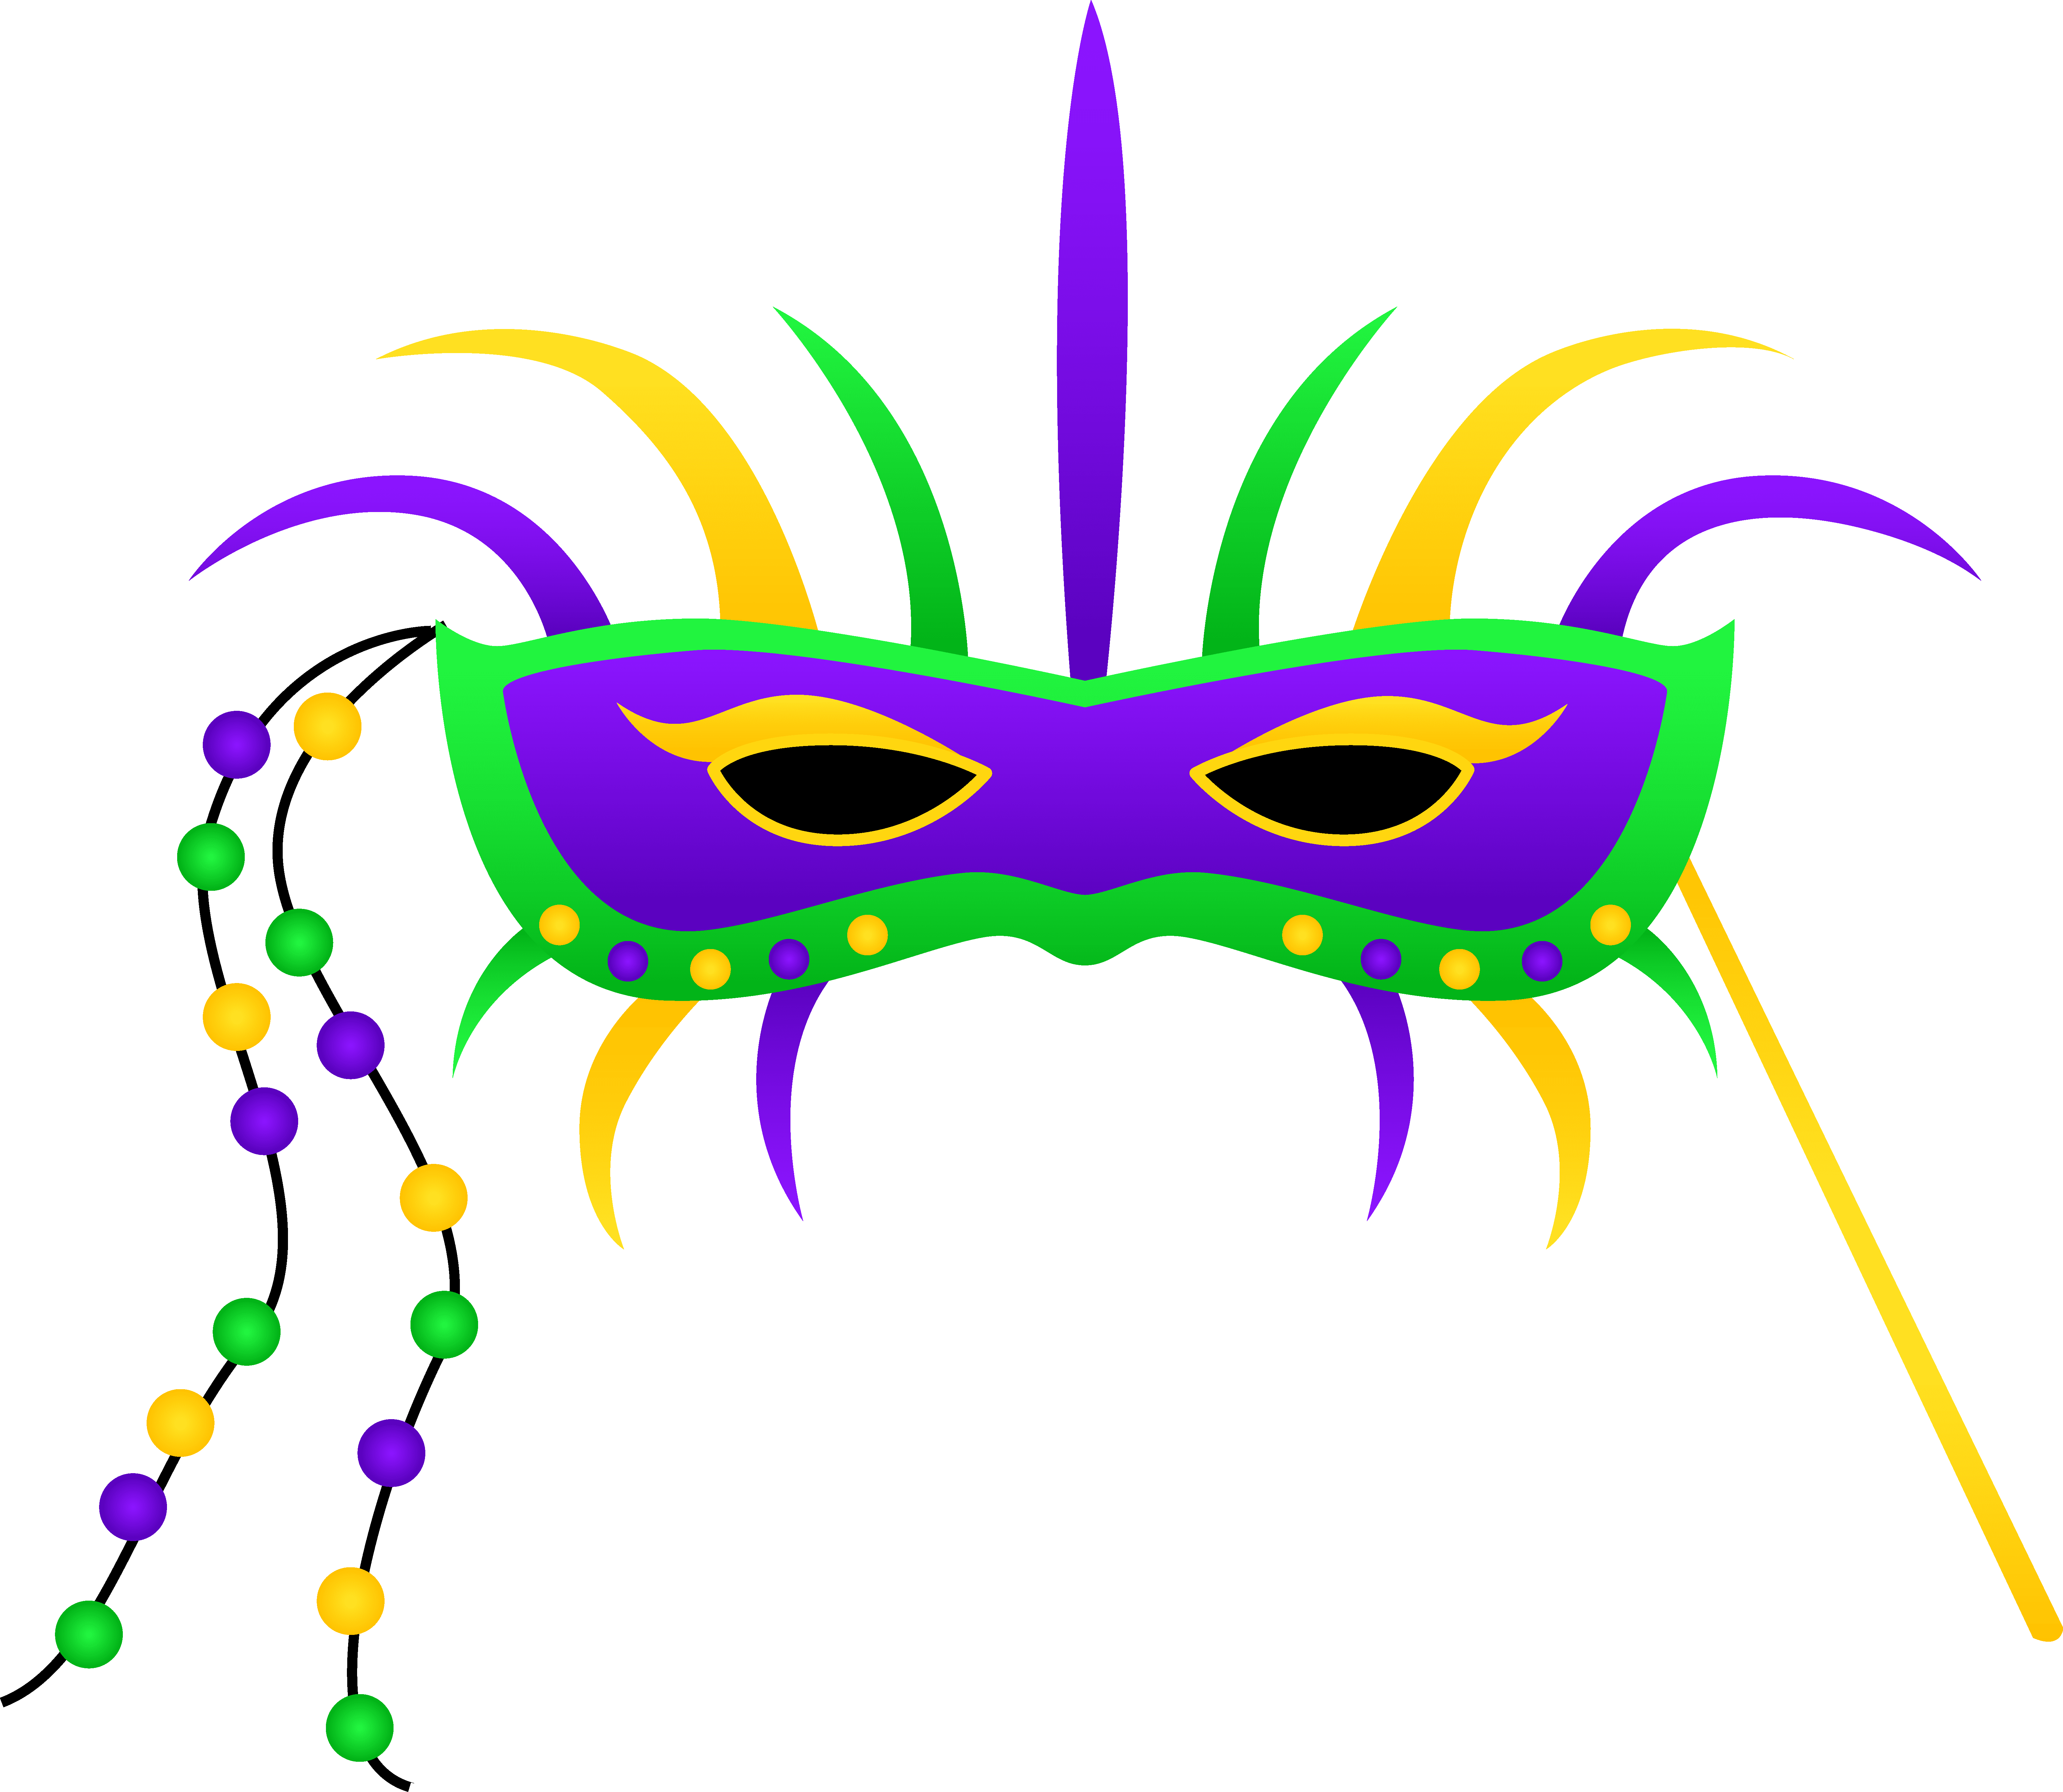 library Cilpart innovation inspiration free. Mardi gras beads clipart